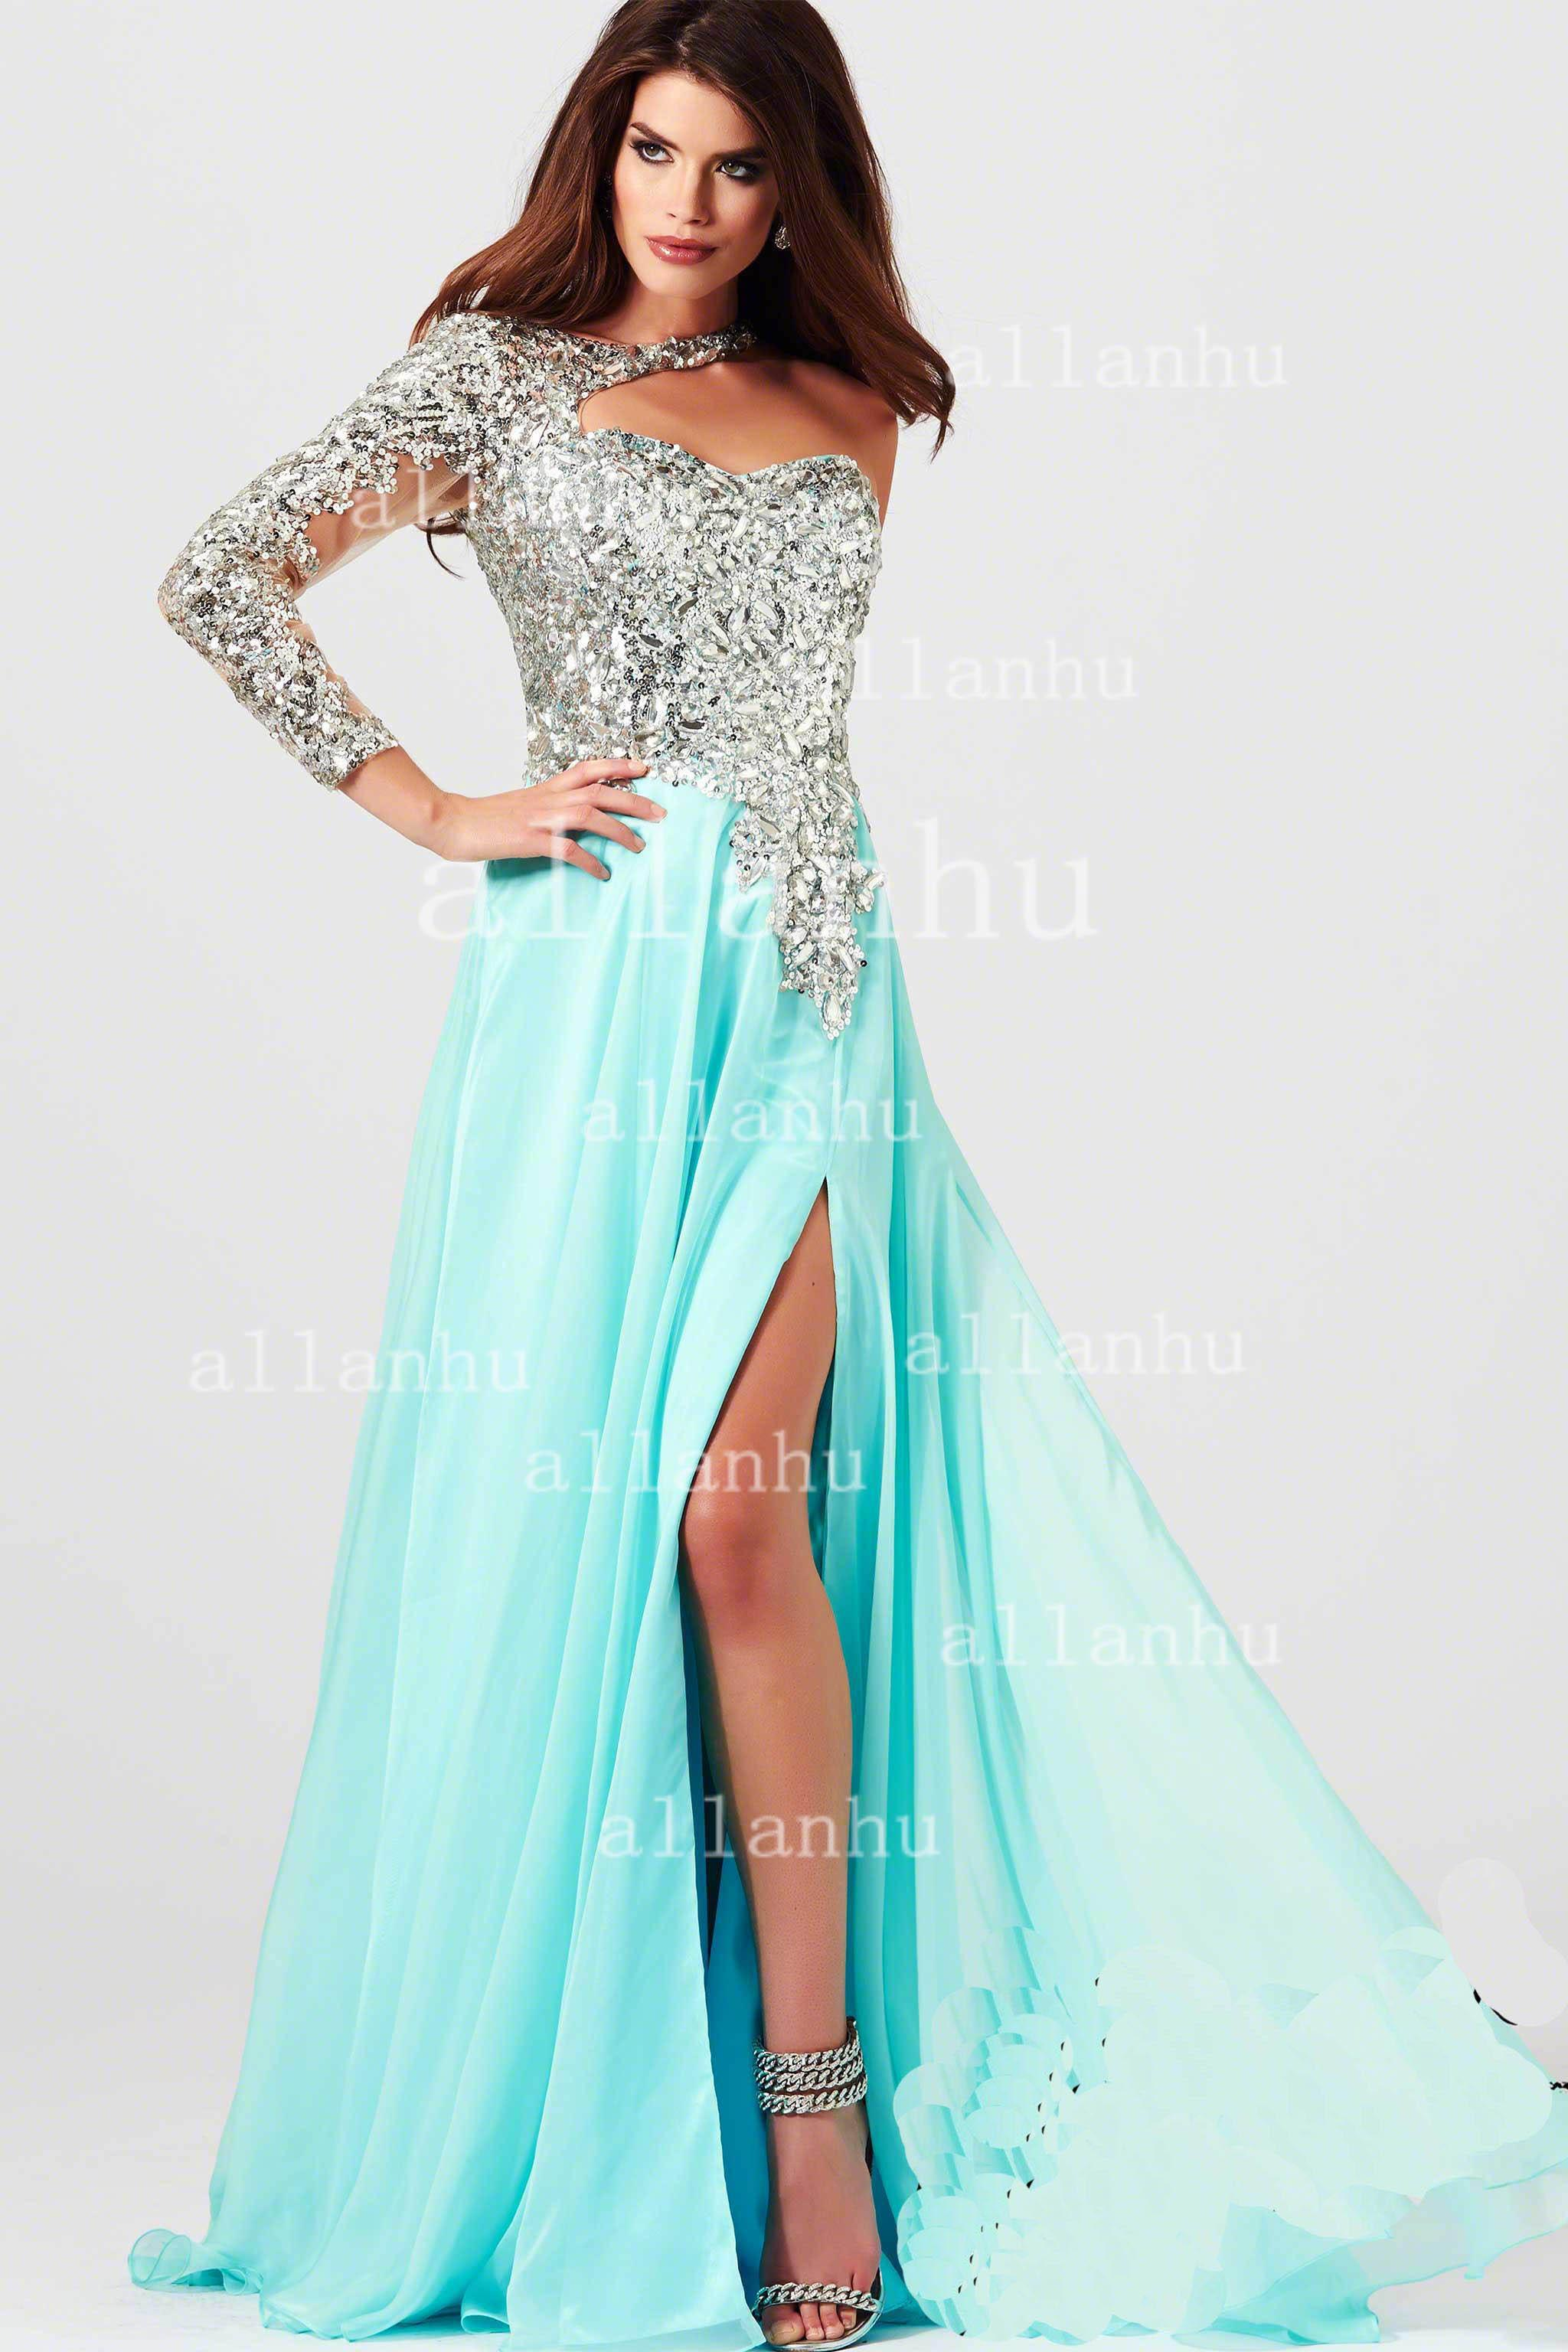 Cheap Prom Dresses Fast Delivery - Gown And Dress Gallery